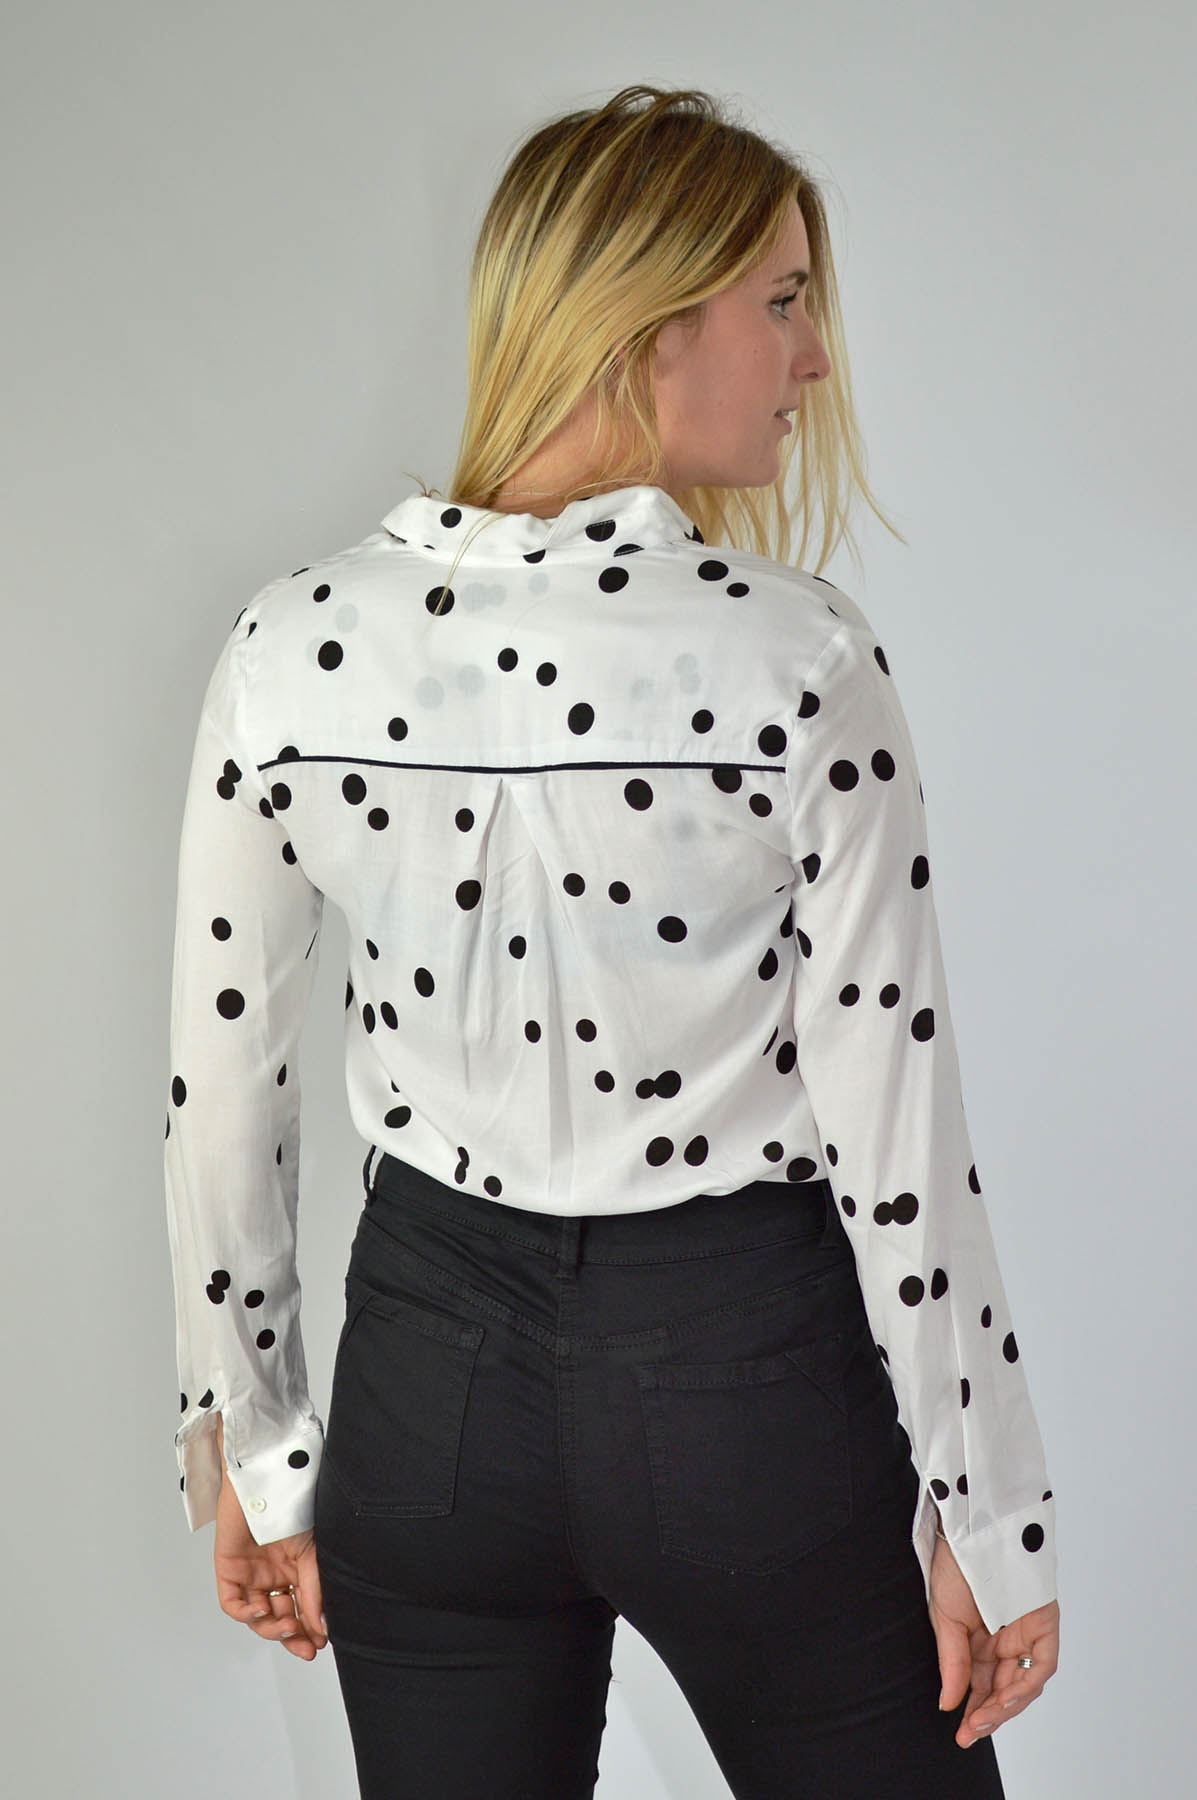 NEXT-Black-White-Spotted-Long-Sleeve-Silky-Shirt-Blouse-SALE-Was-24 thumbnail 14